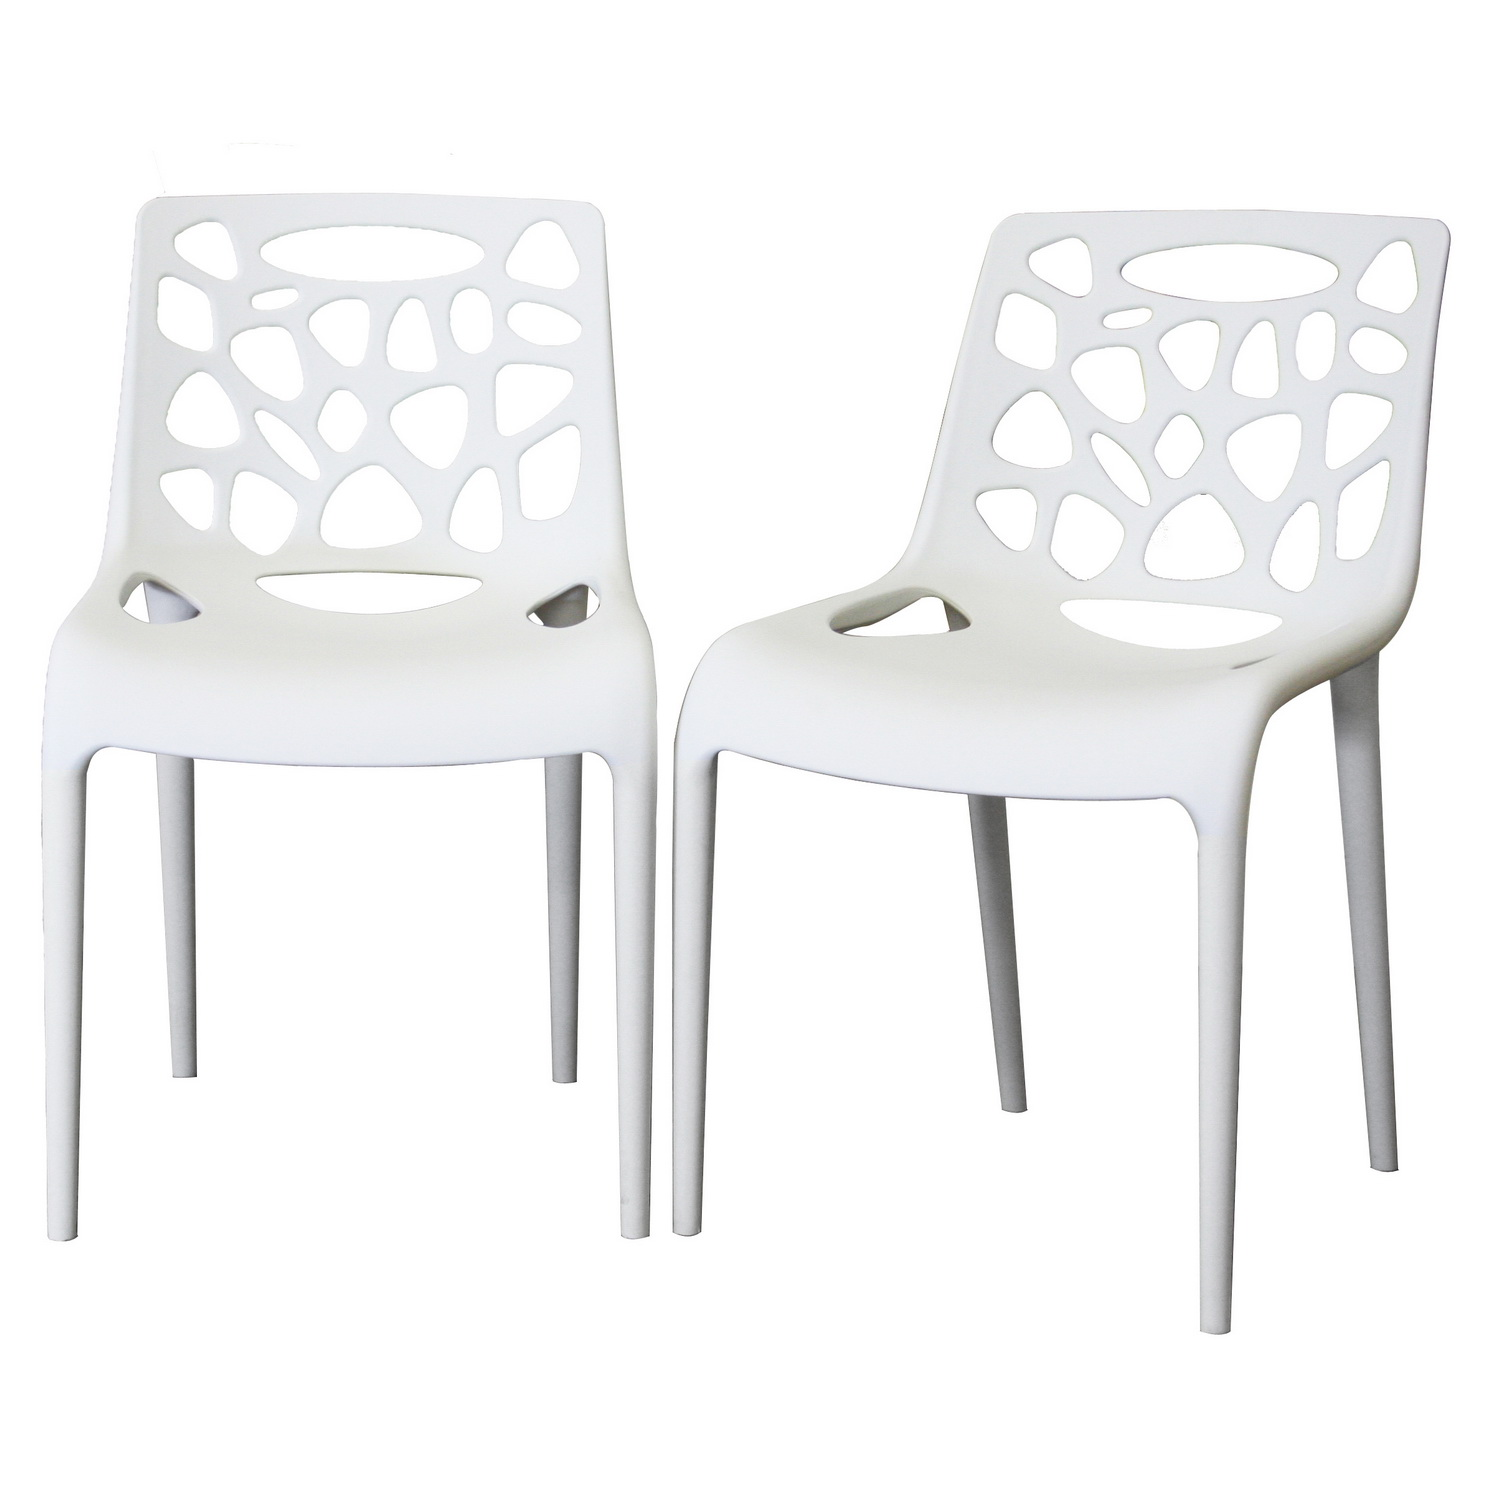 Amazing Design Of White Plastic Chairs Design Ideas Using Unique Back and Seat